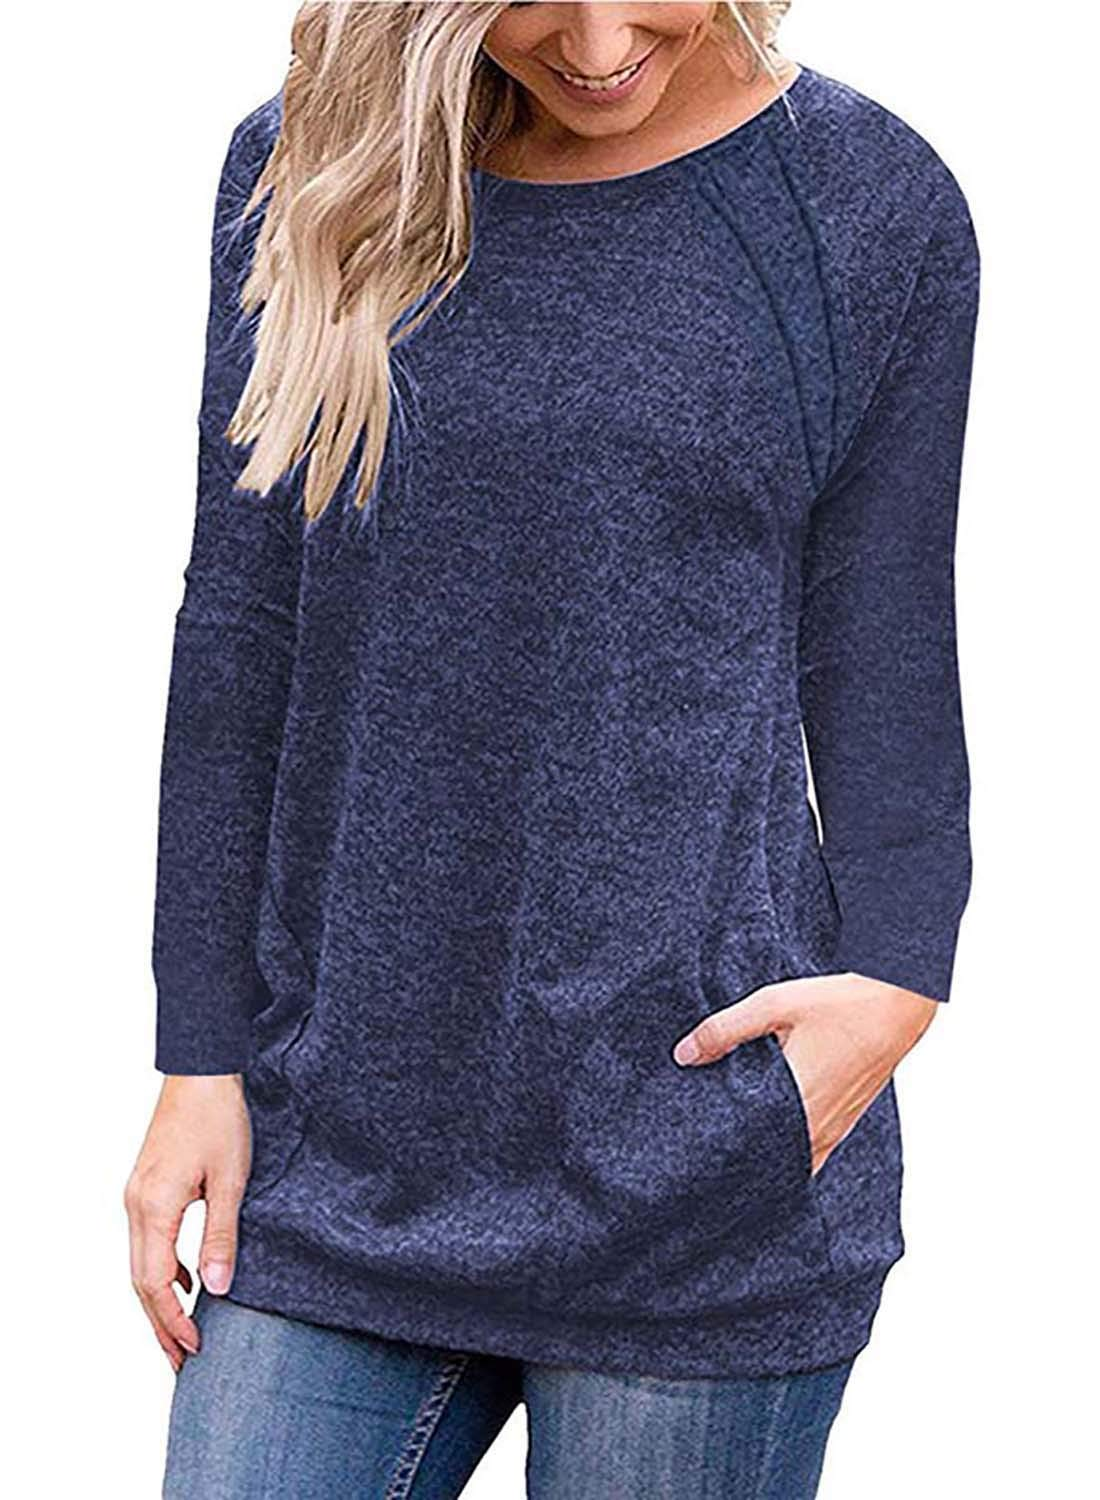 Ruiyige Women's Comfort Casual Loose Fit Tops Blouse T-Shirts with Pockets